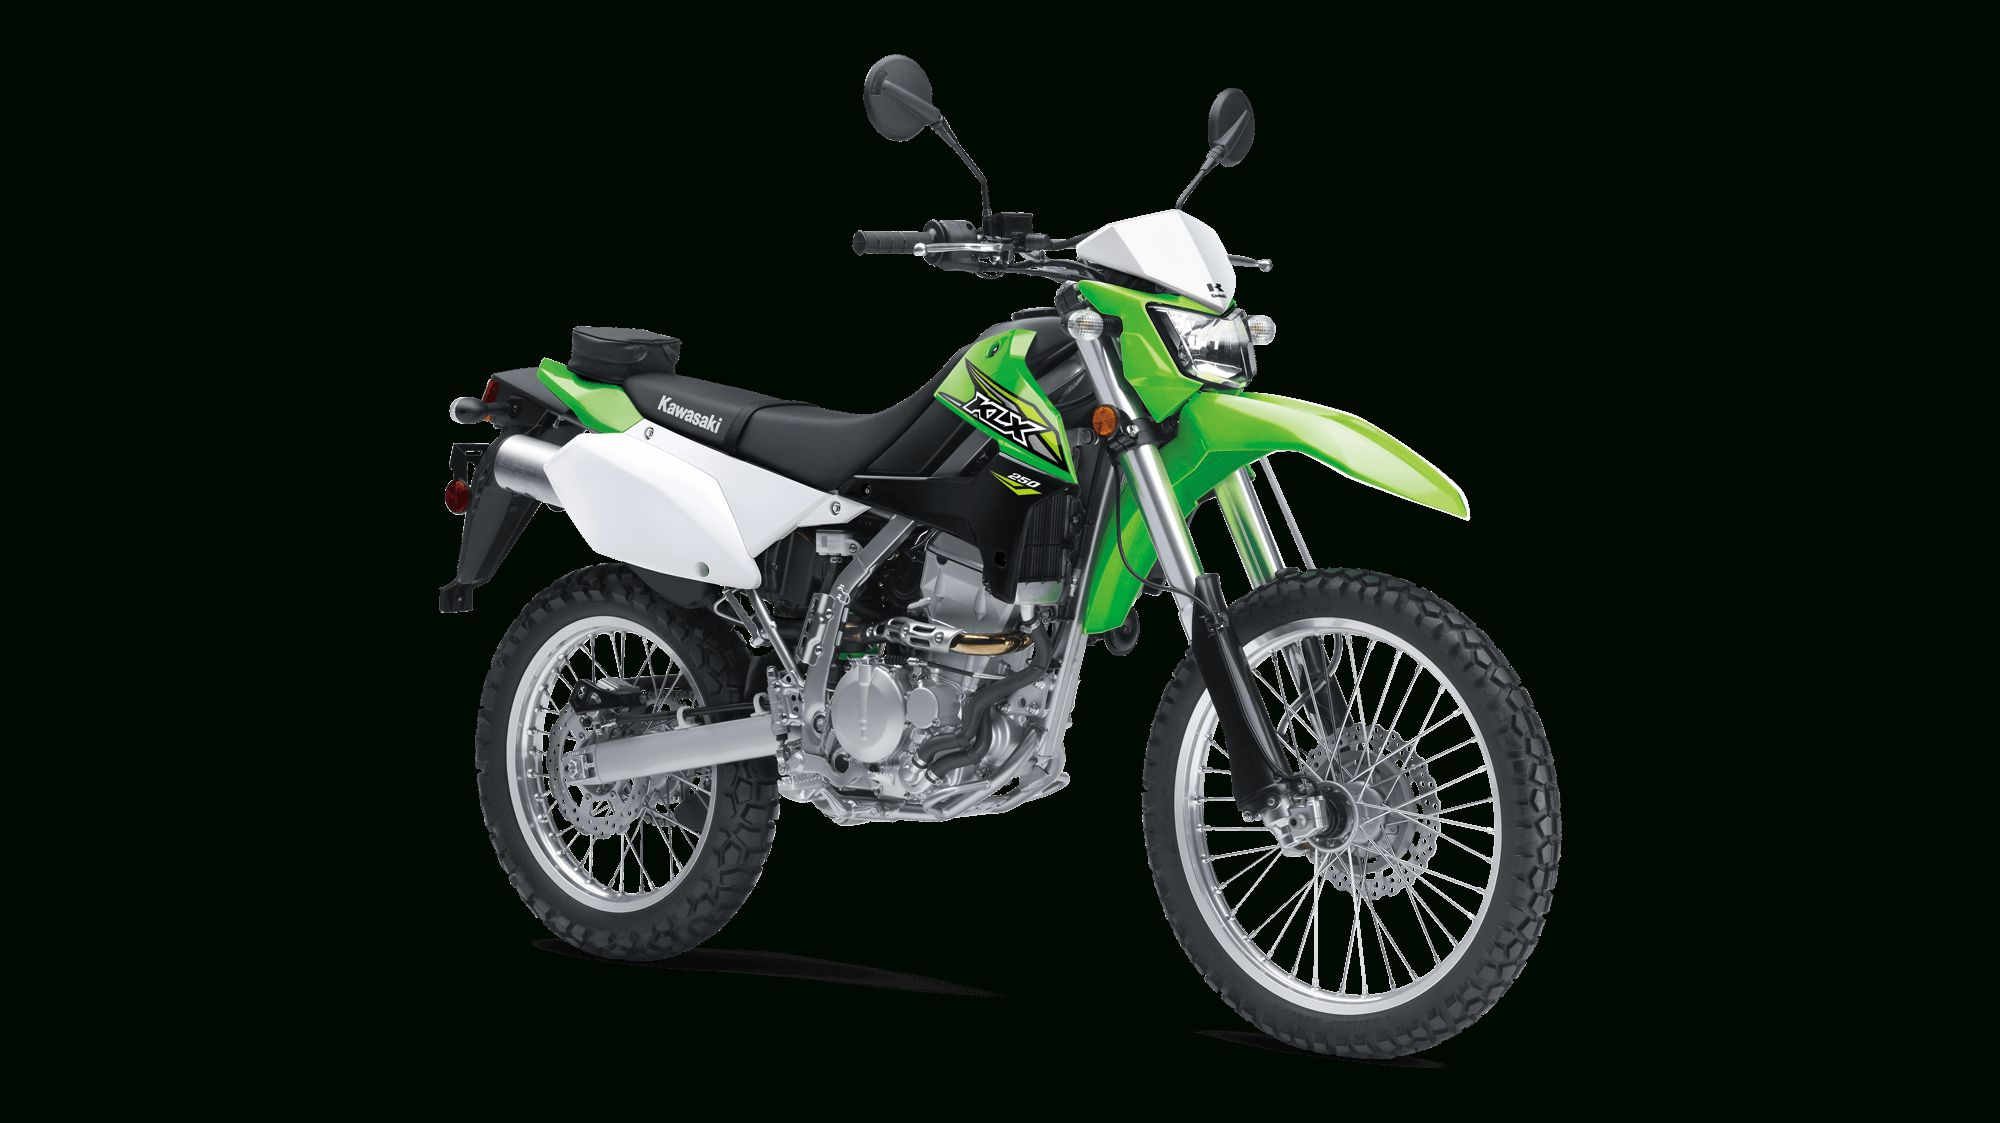 2018 Kawasaki 250 Dual Sport Concept and Review from 2018